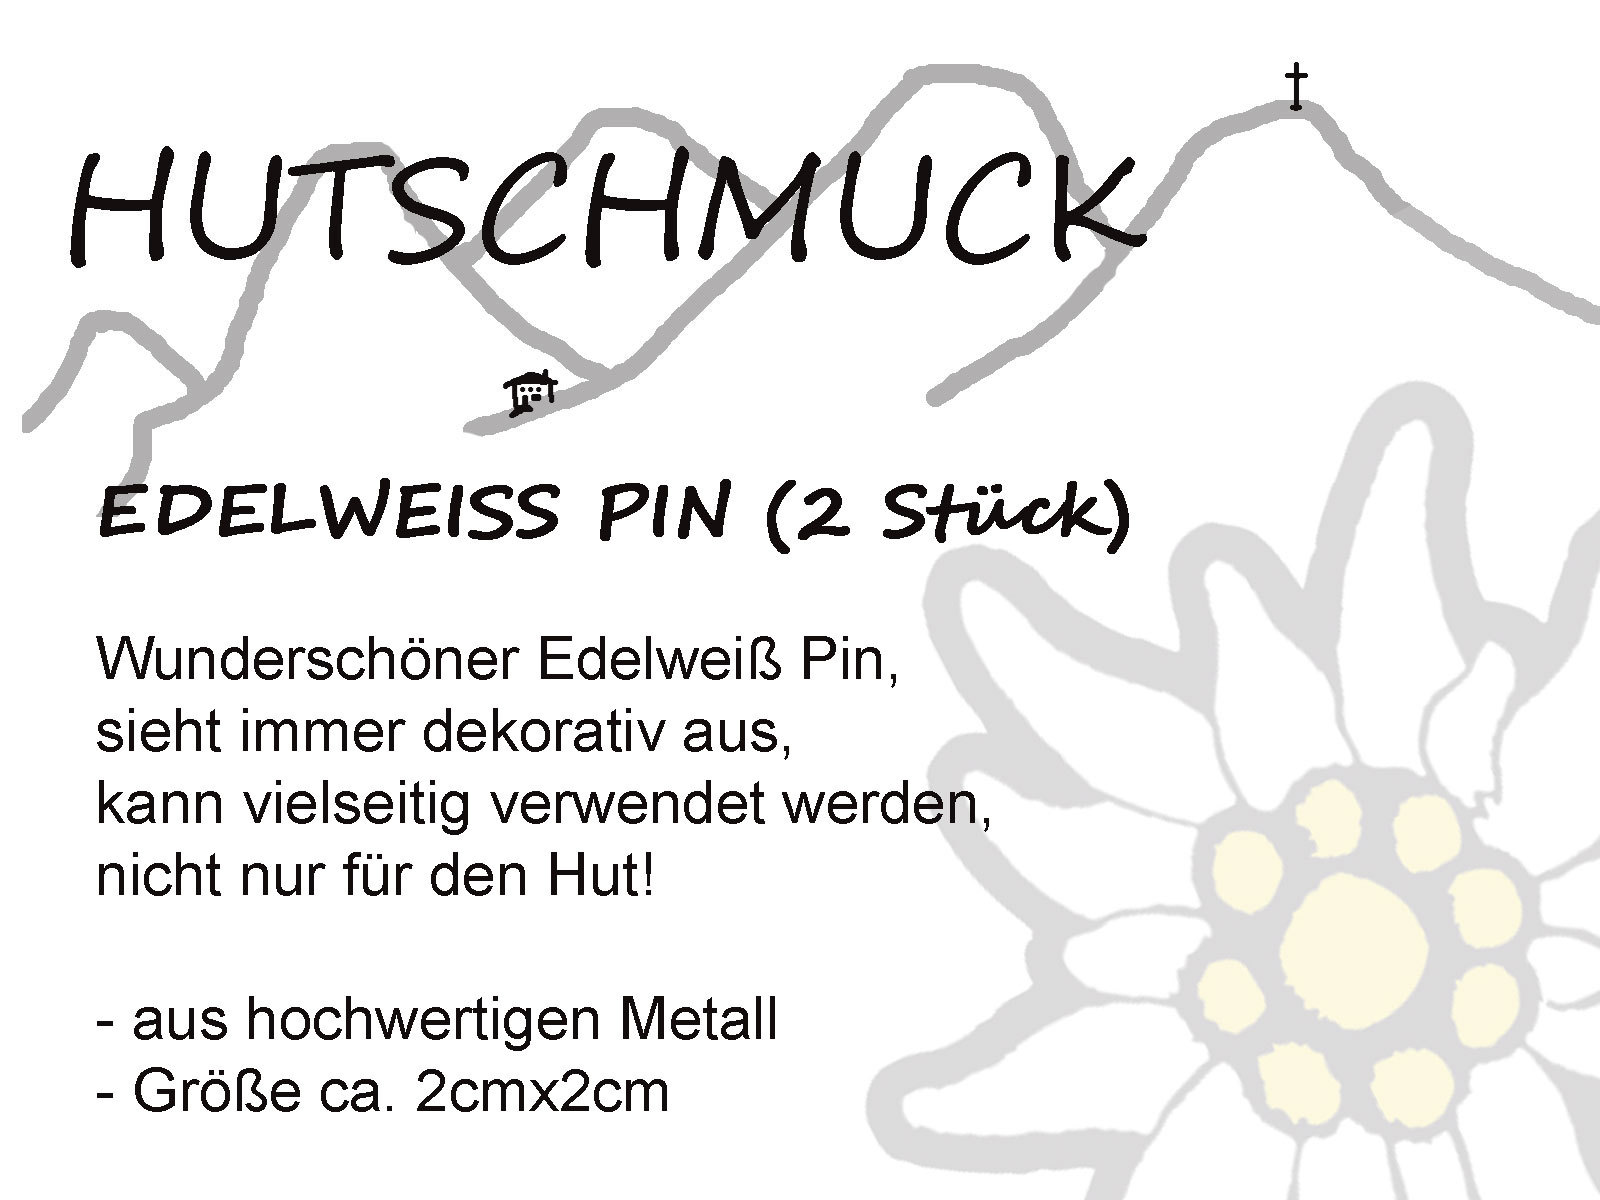 Edelweiss-Pin-klein-2-Stueck